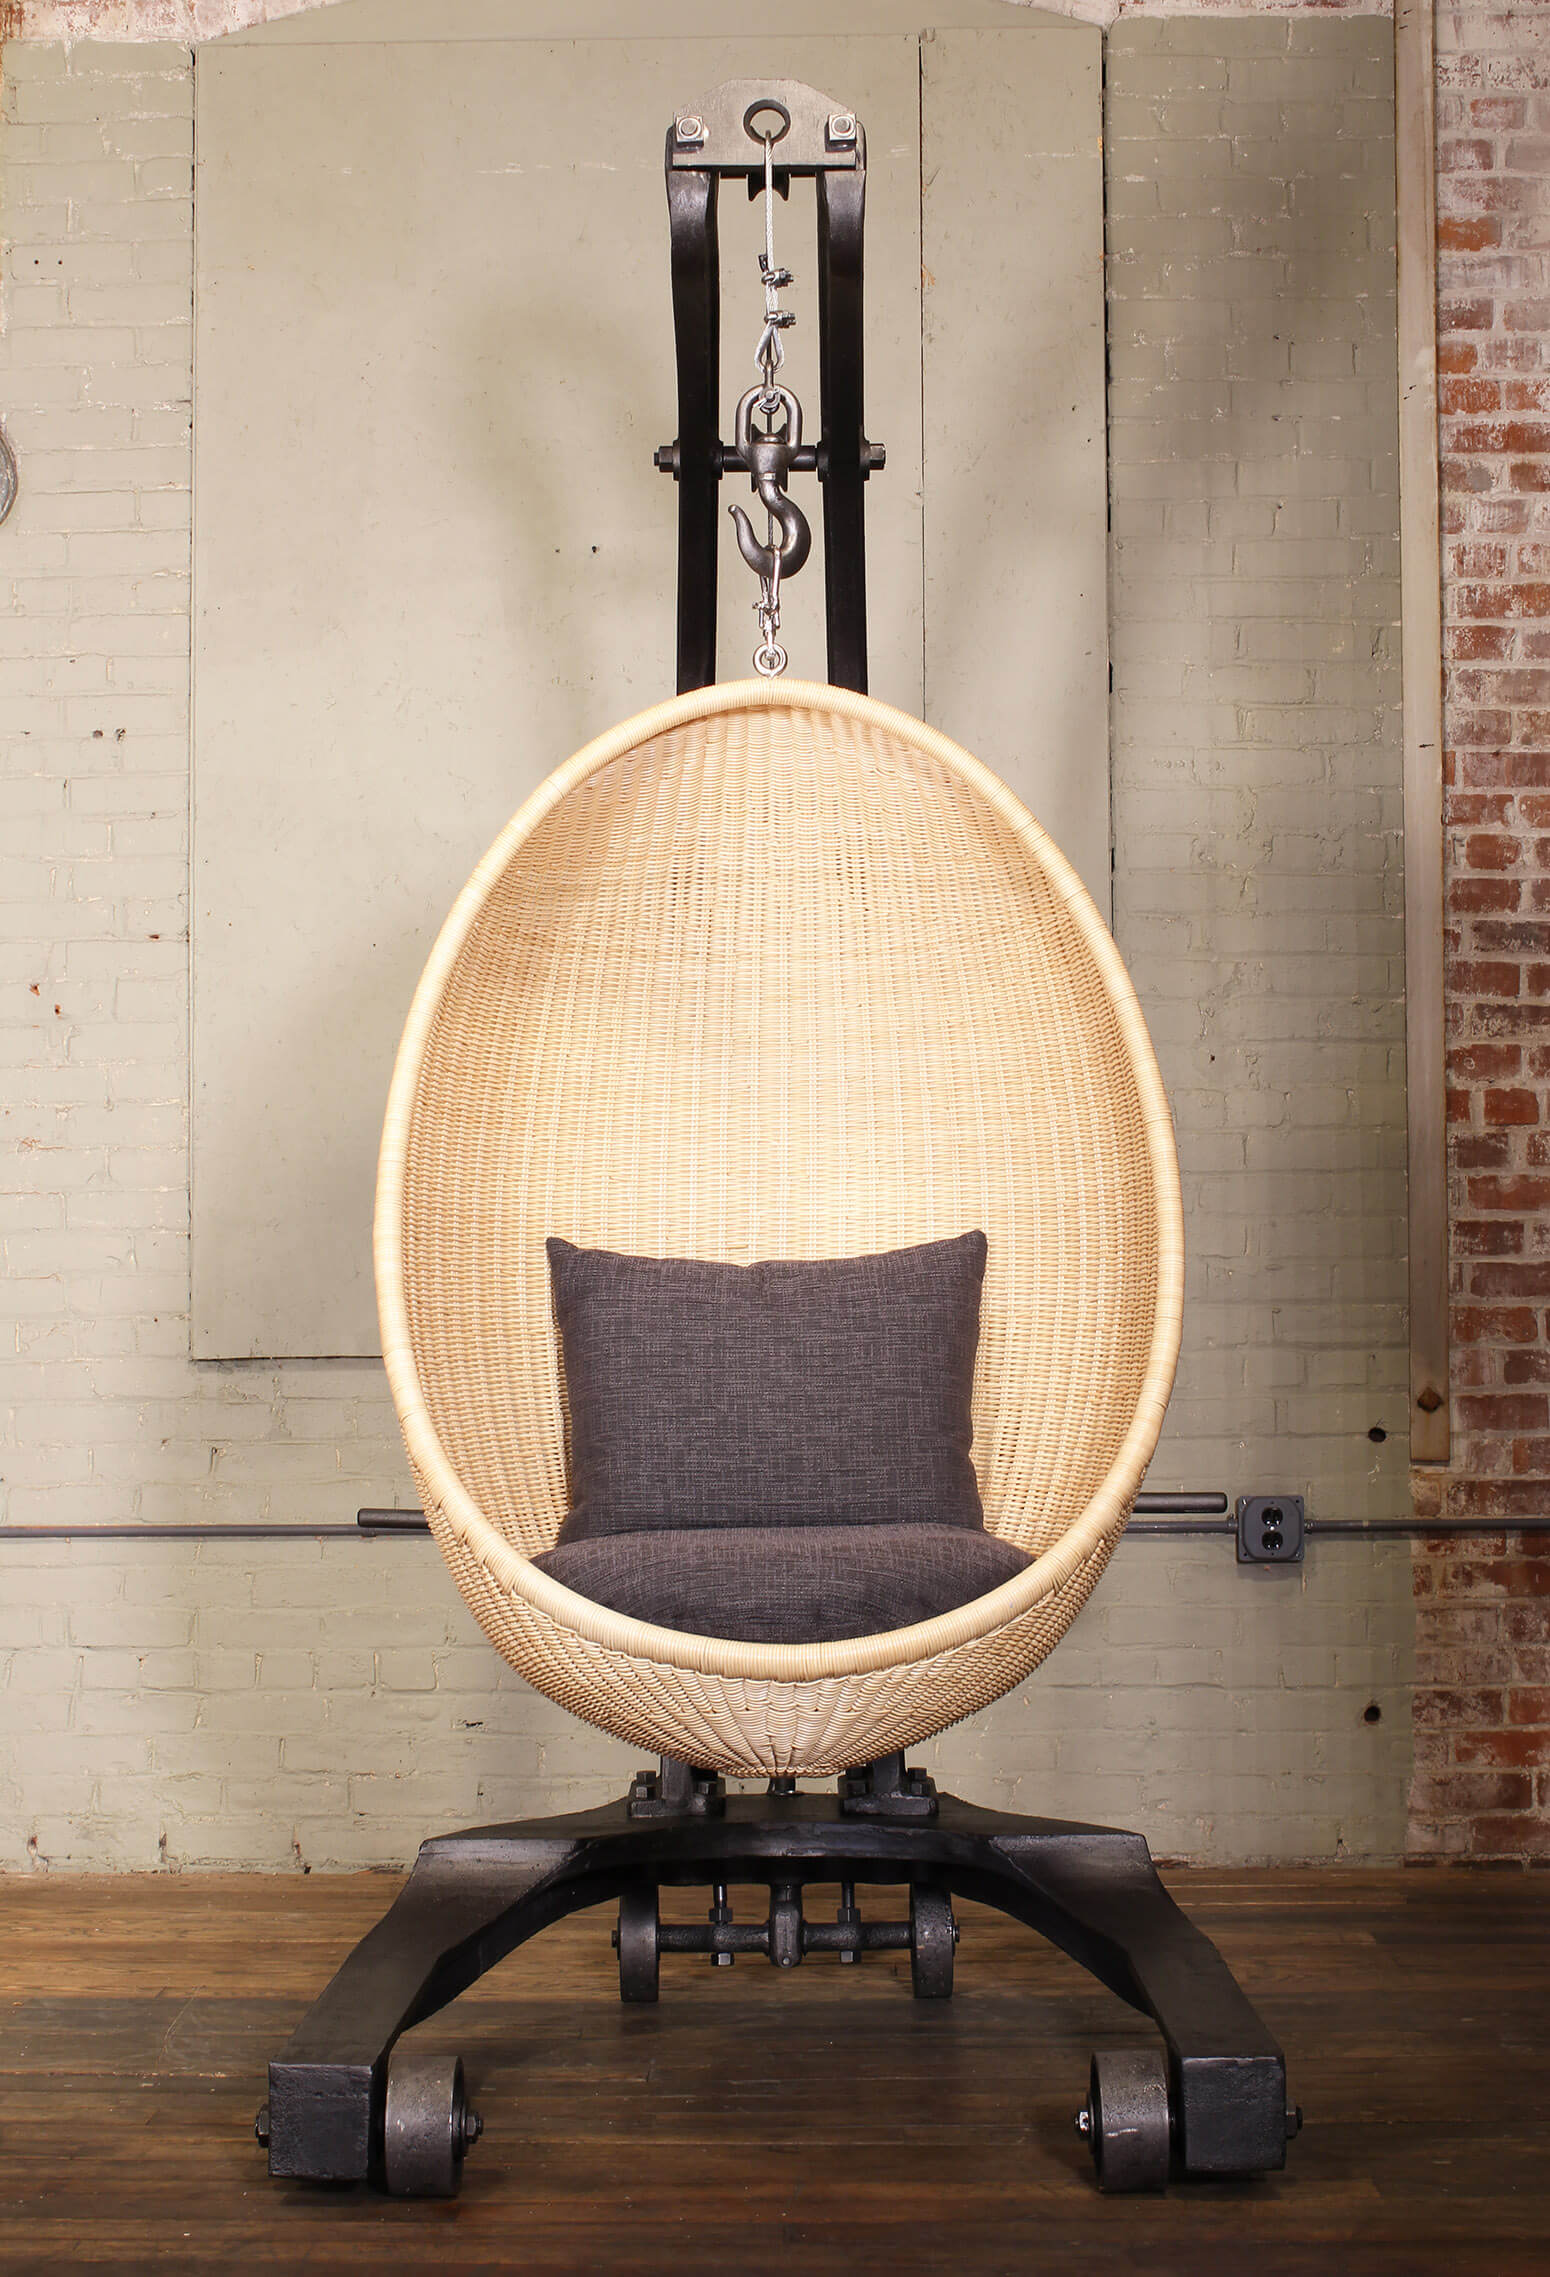 Egg Chairs For Sale Cheap Egg Chair On Sale Urban Home Designing Trends